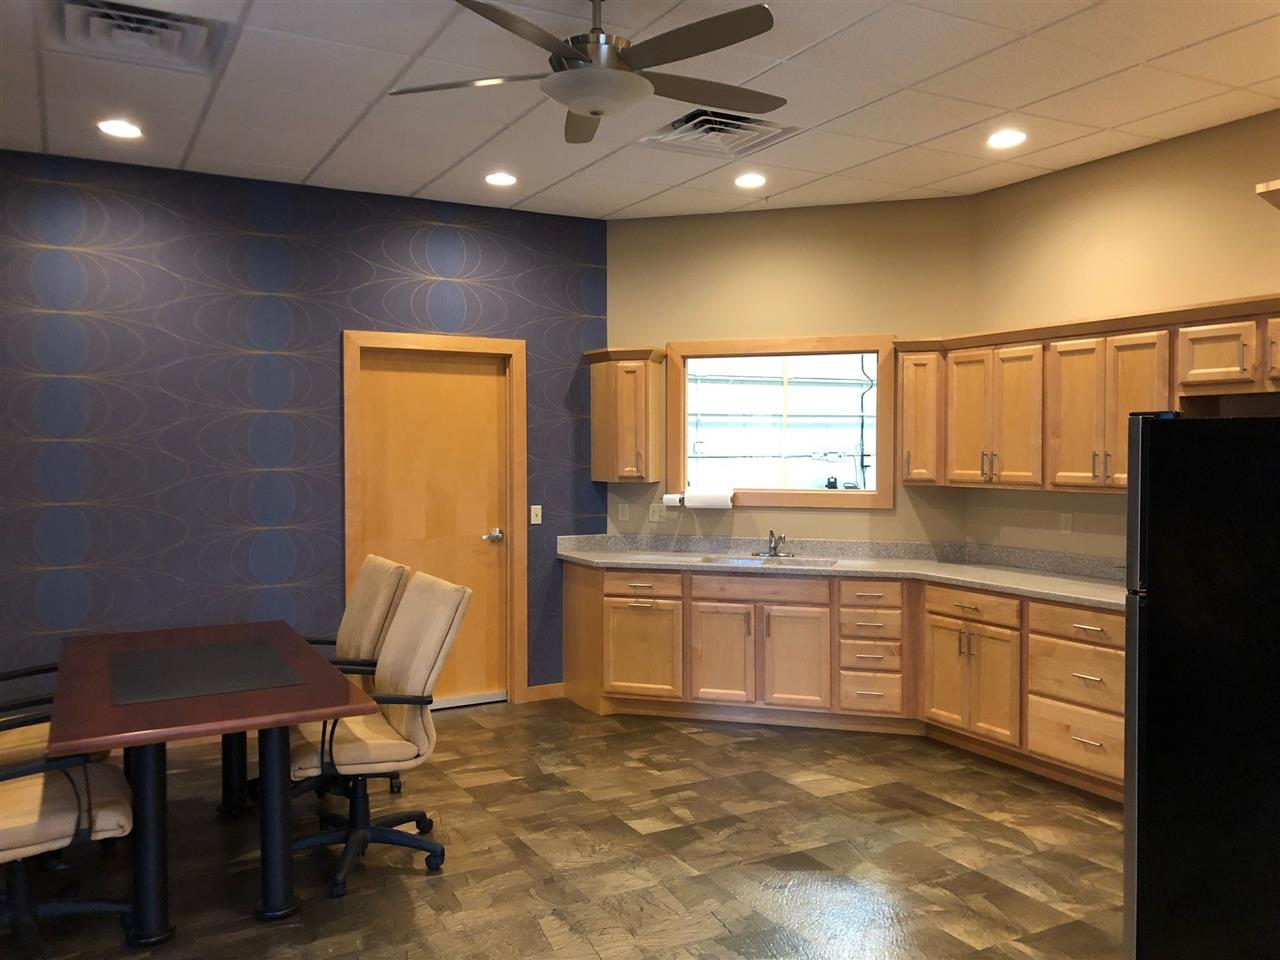 Hangar office kitchen with refrigerator, full cabinets, and coffee maker.